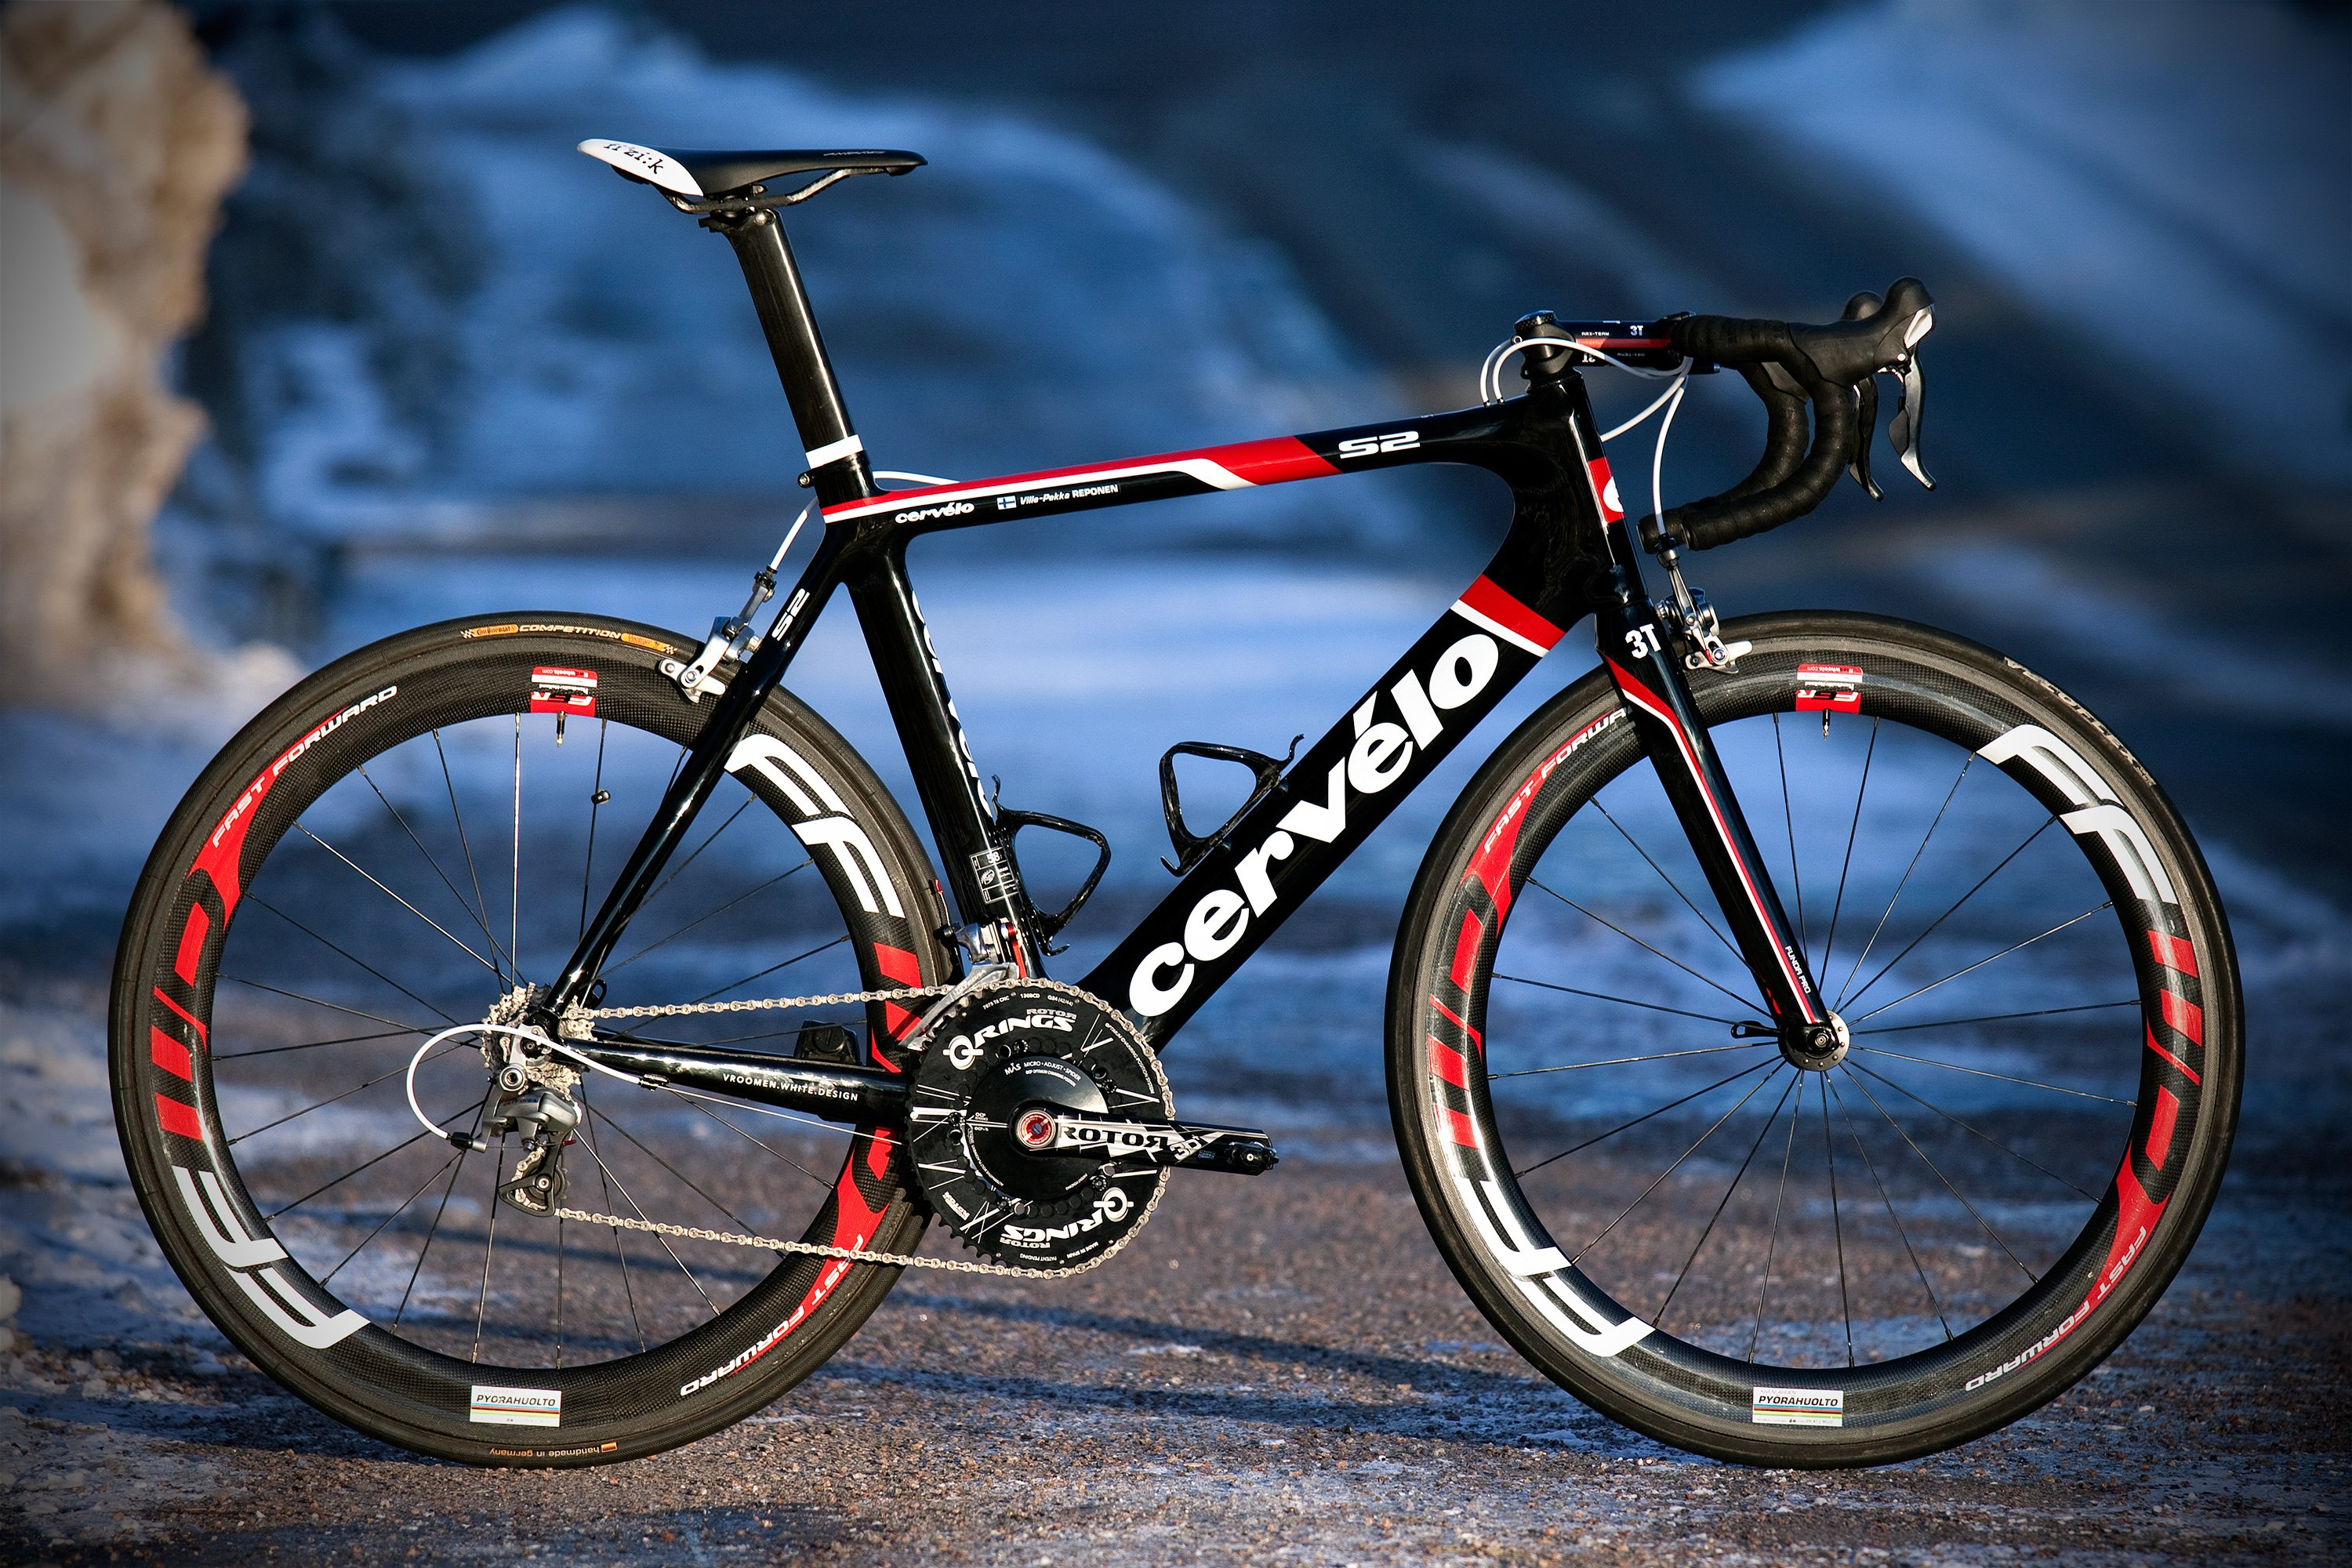 cervelo bicycle bike wallpaper 3000x2000 466764